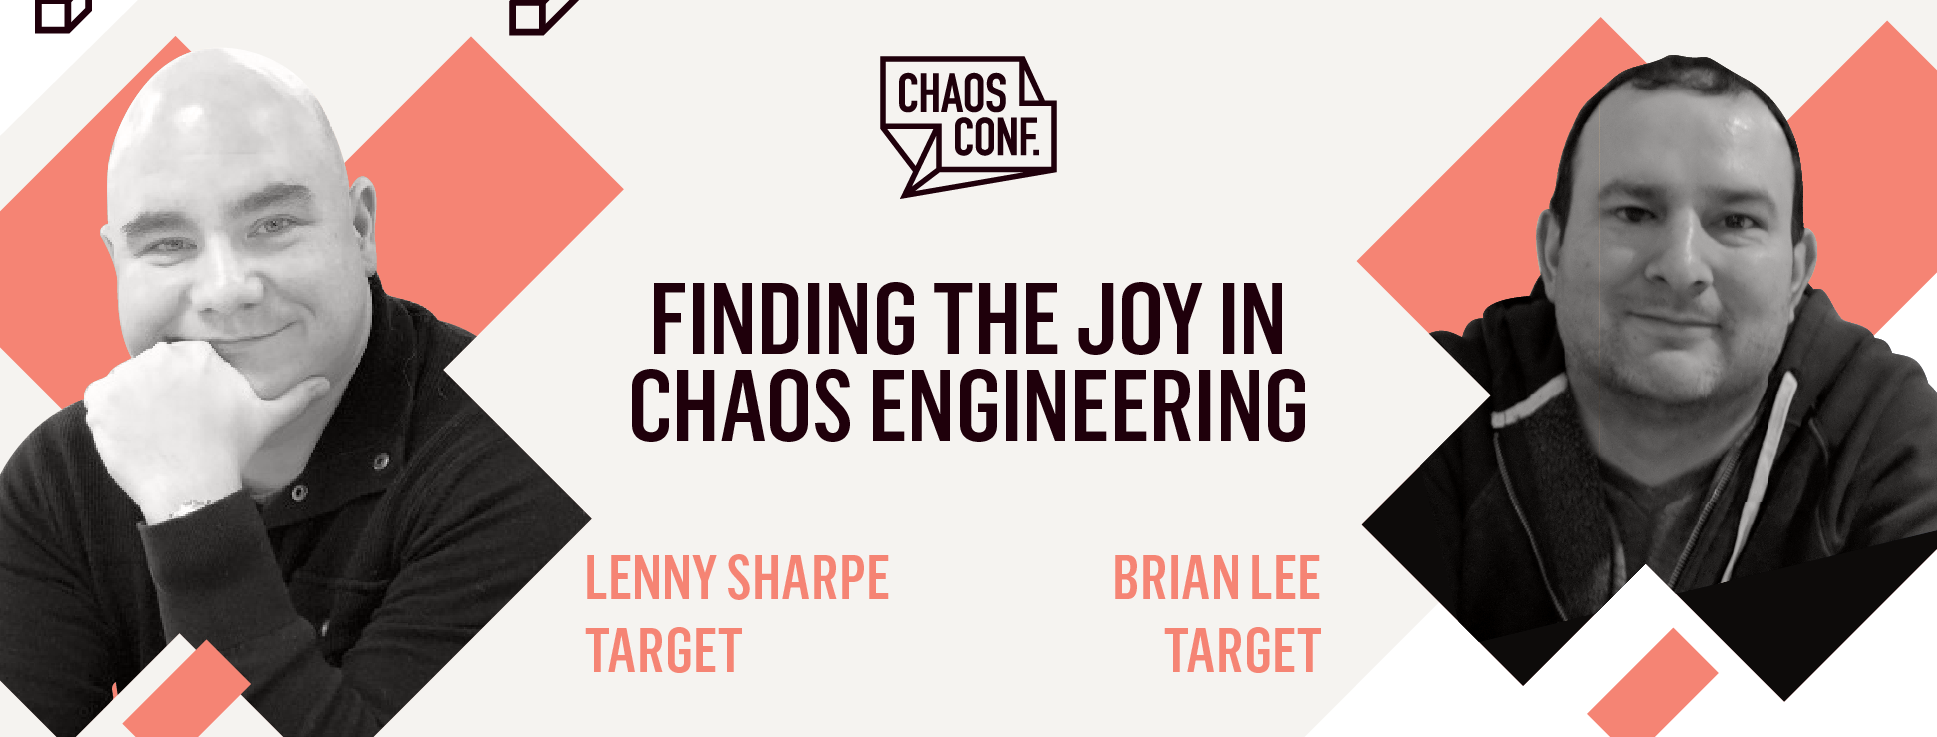 Lenny Sharpe and Brian Lee: Finding the Joy in Chaos Engineering - Chaos Conf 2019